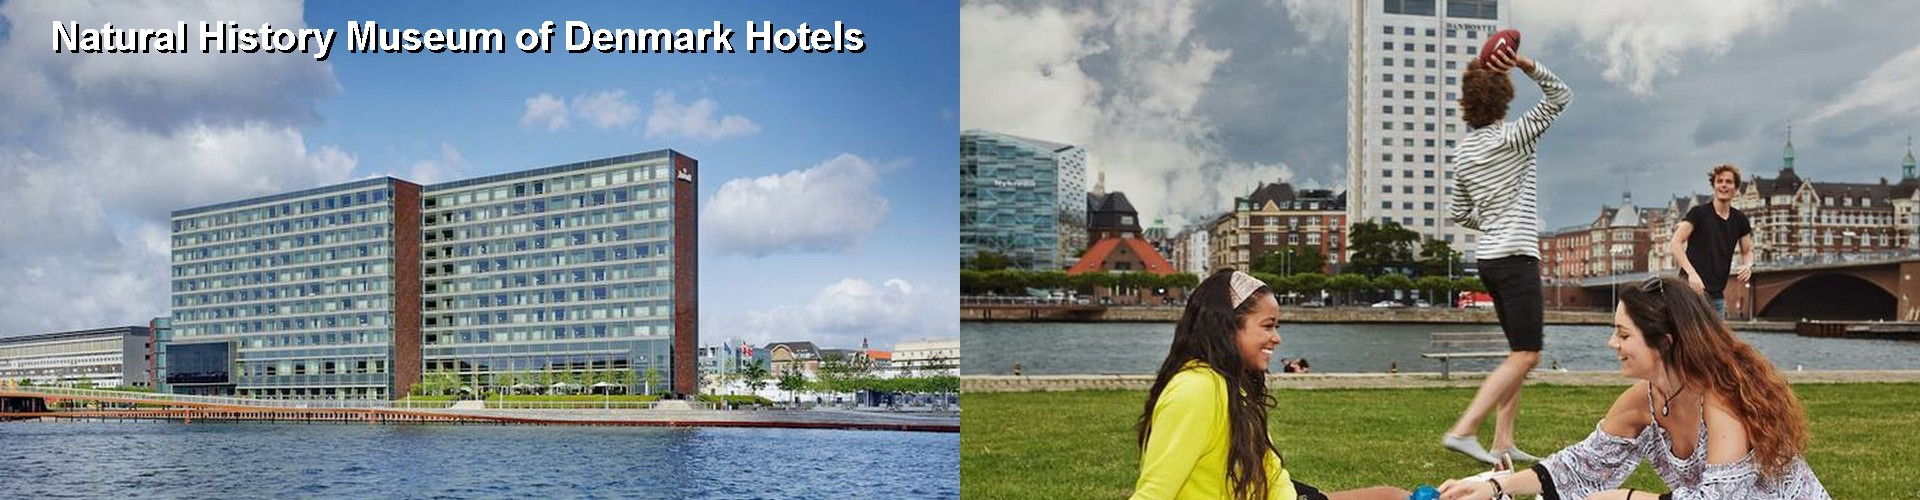 5 Best Hotels near Natural History Museum of Denmark